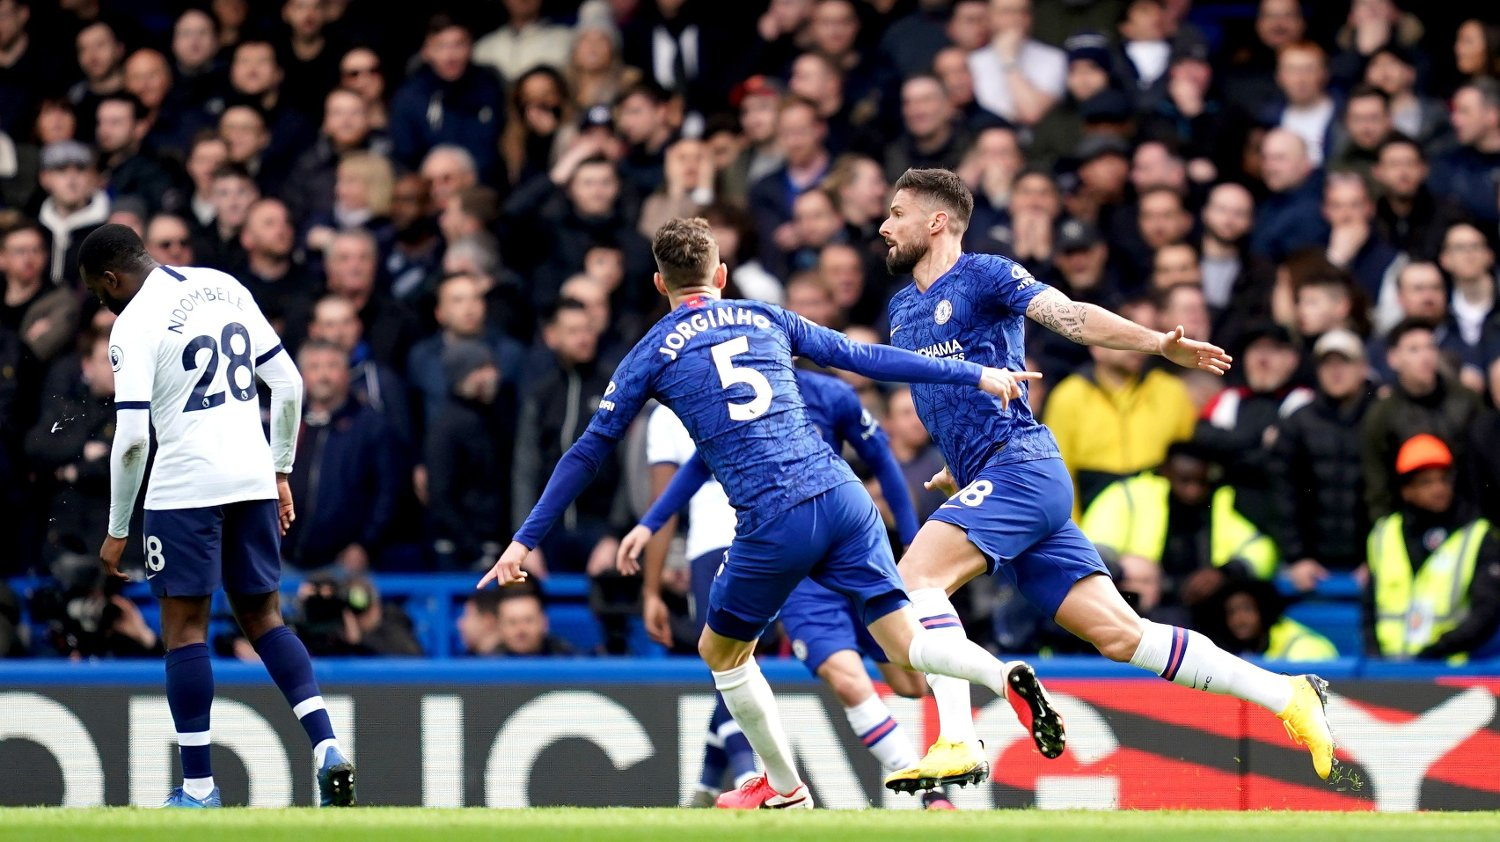 Chelsea's Olivier Giroud celebrates scoring his side's first goal of the game with team-mates during the Premier League match at Stamford Bridge, London.